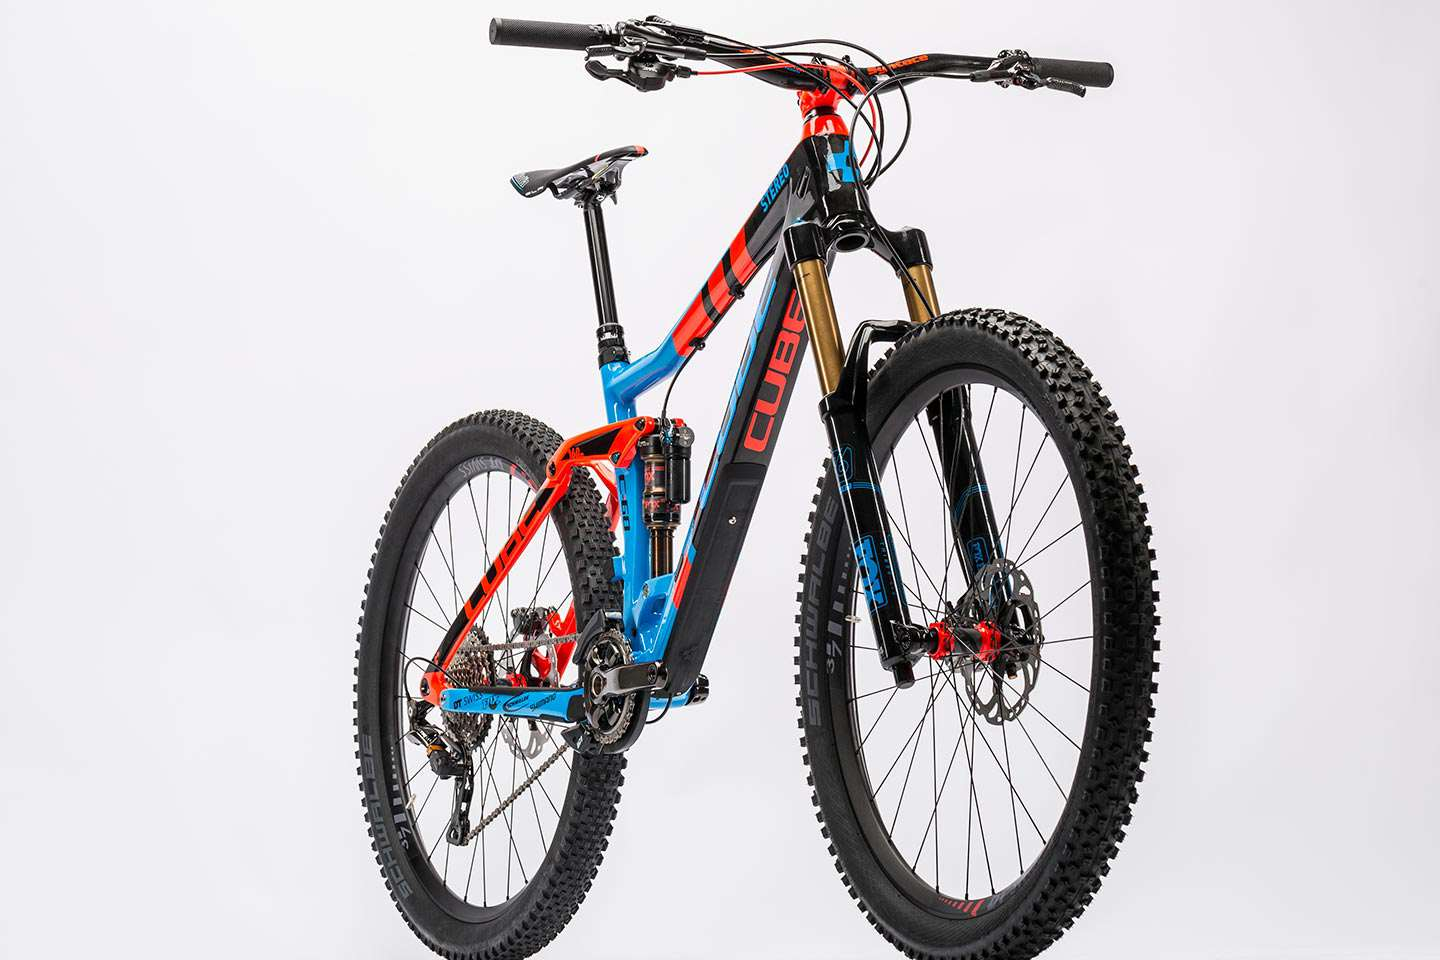 325cad806f4 Cube STEREO 160 C:68 ACTION TEAM 27.5 Mountainbike Fully ▷ buy online  cheaply ▷ mhw-bike.com